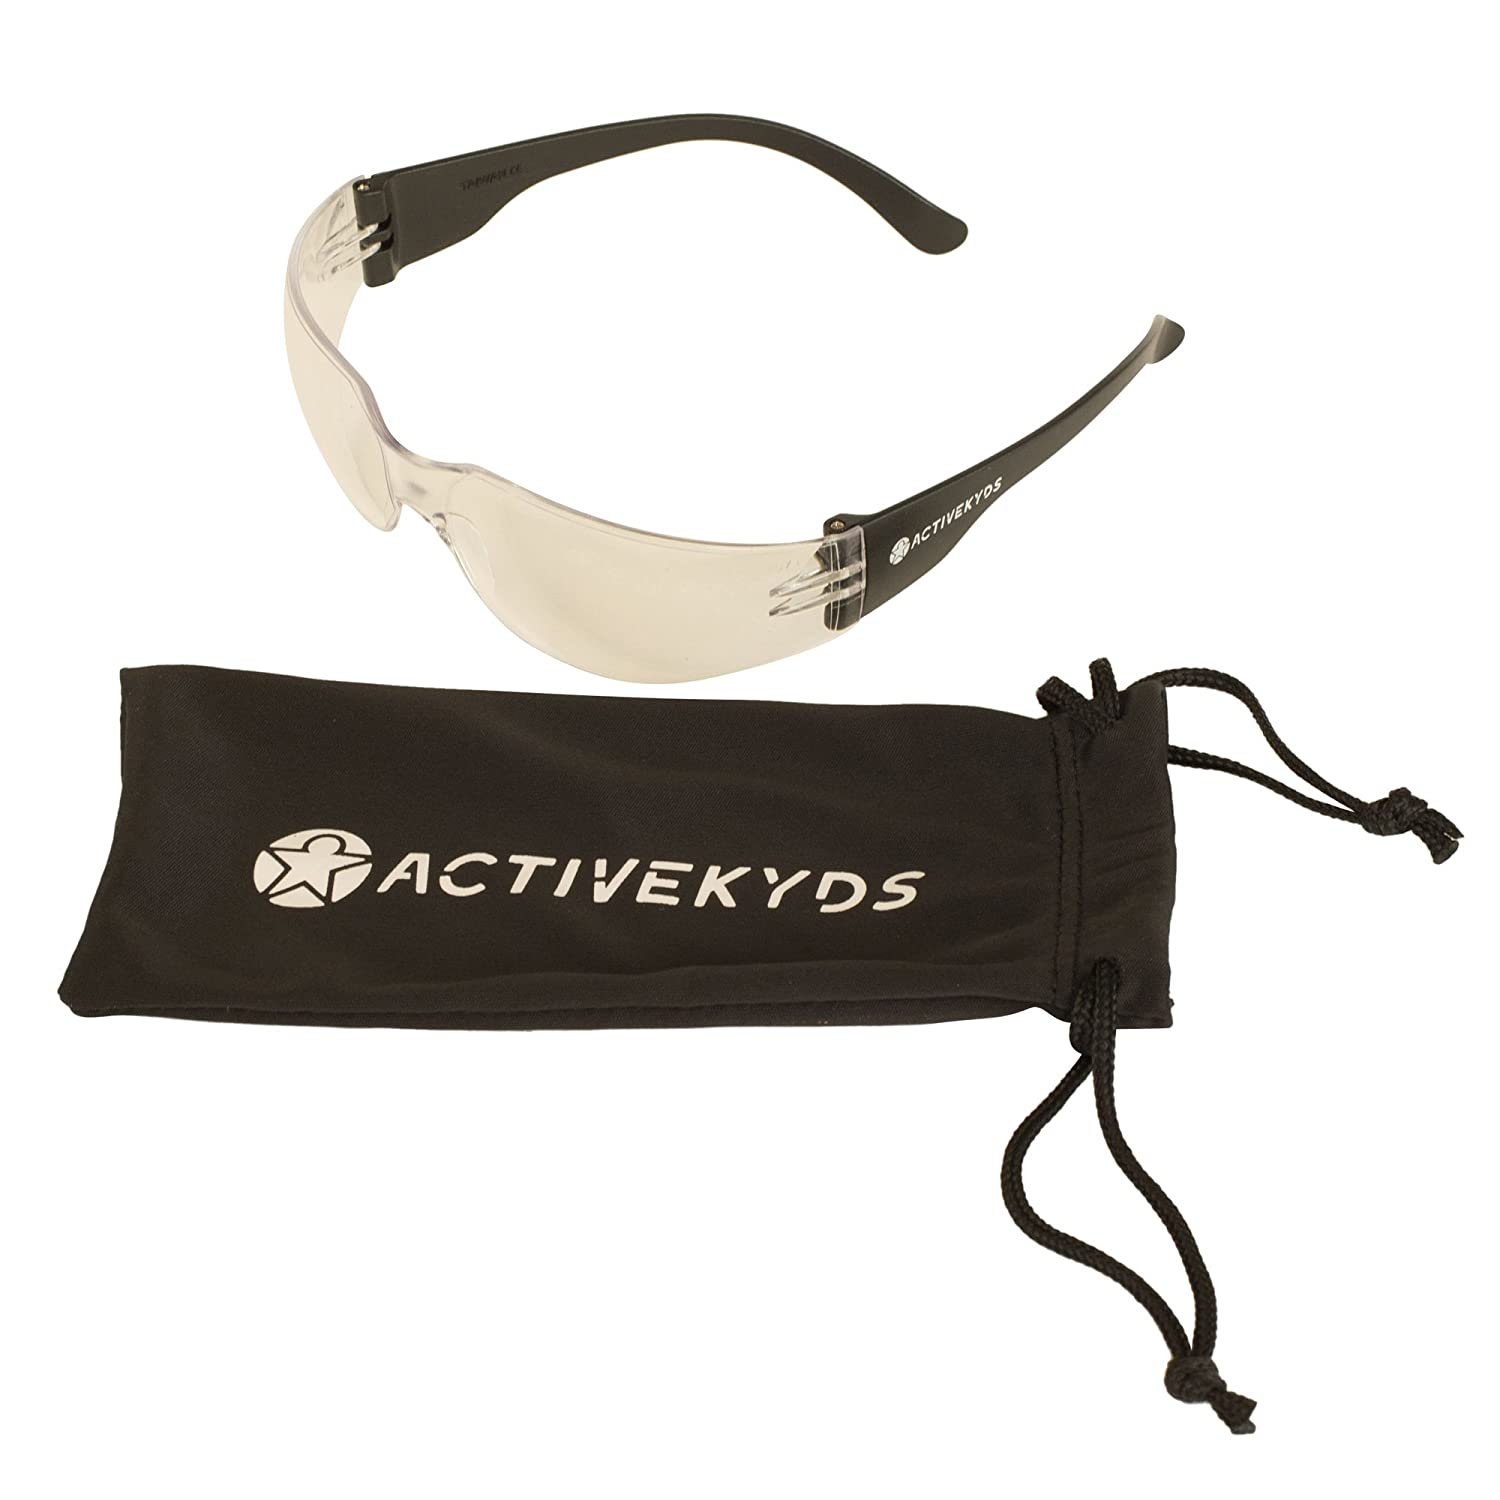 Active Kyds Safety Glasses for Kids Construction Costumes or Protective Eyewear with Microfiber Pouch